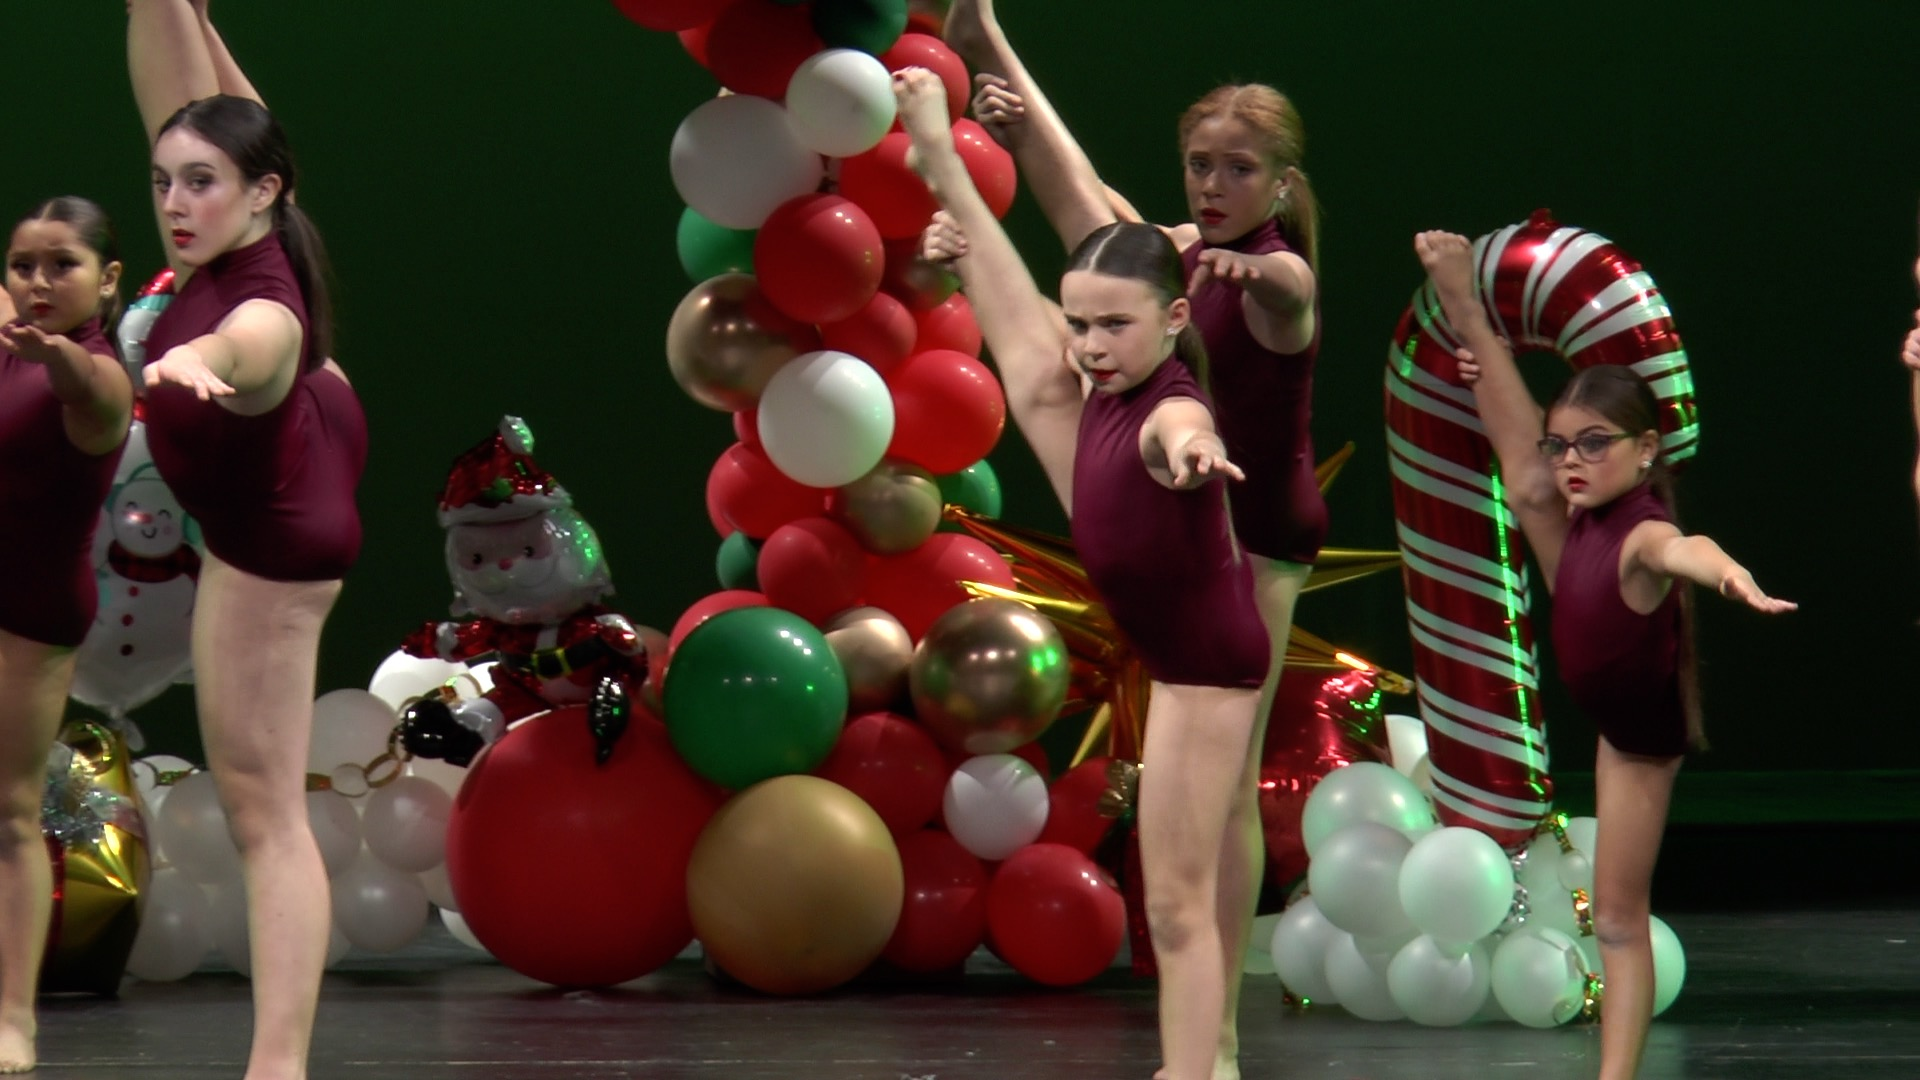 Peace Love and Dance 2019 Christmas Recital 1:00 Show